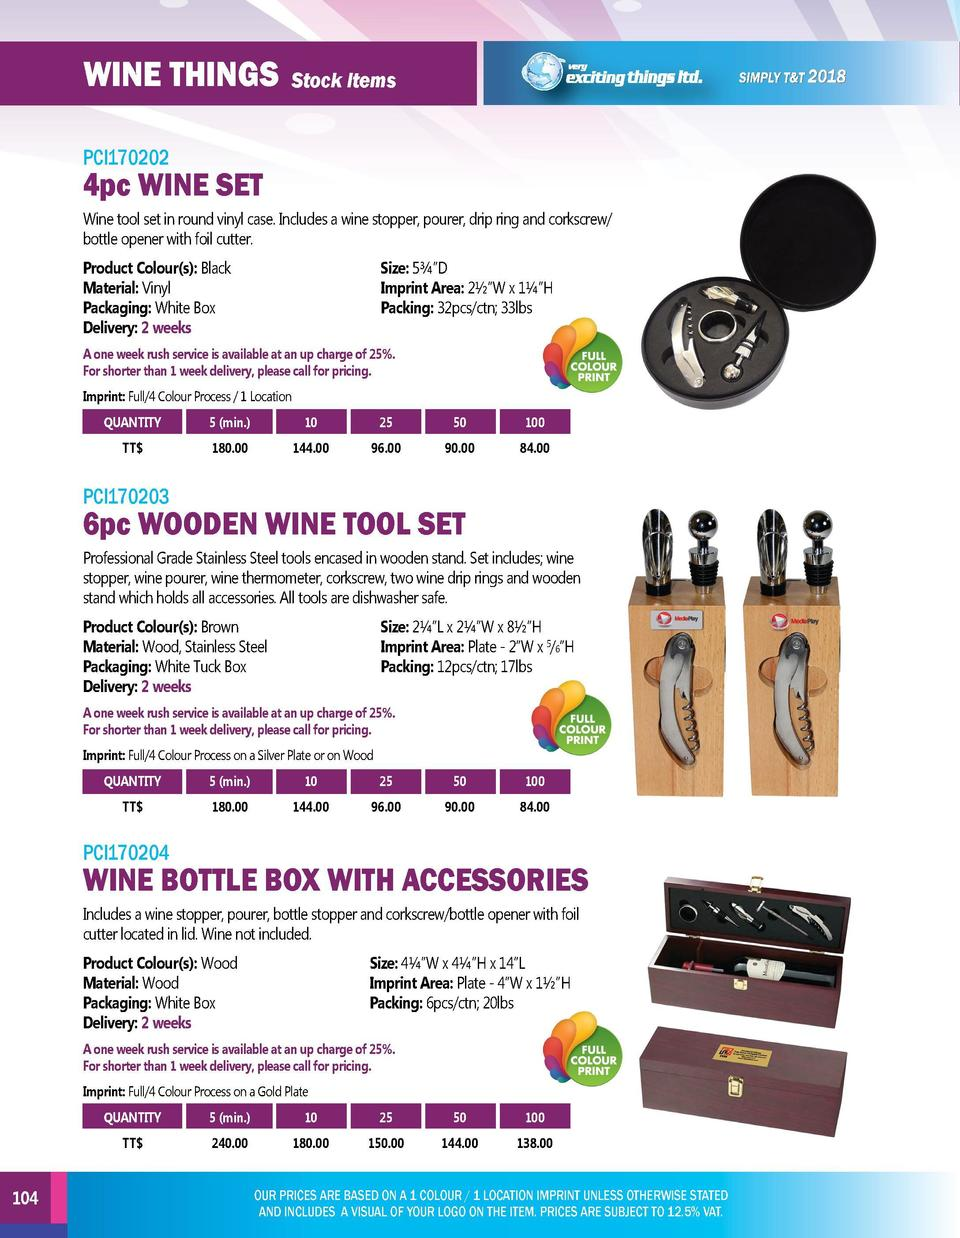 WINE THINGS  MAKE IT A GIFT  Stock Items  Stock Items  PCI170202  PCI170205  Wine tool set in round vinyl case. Includes a...